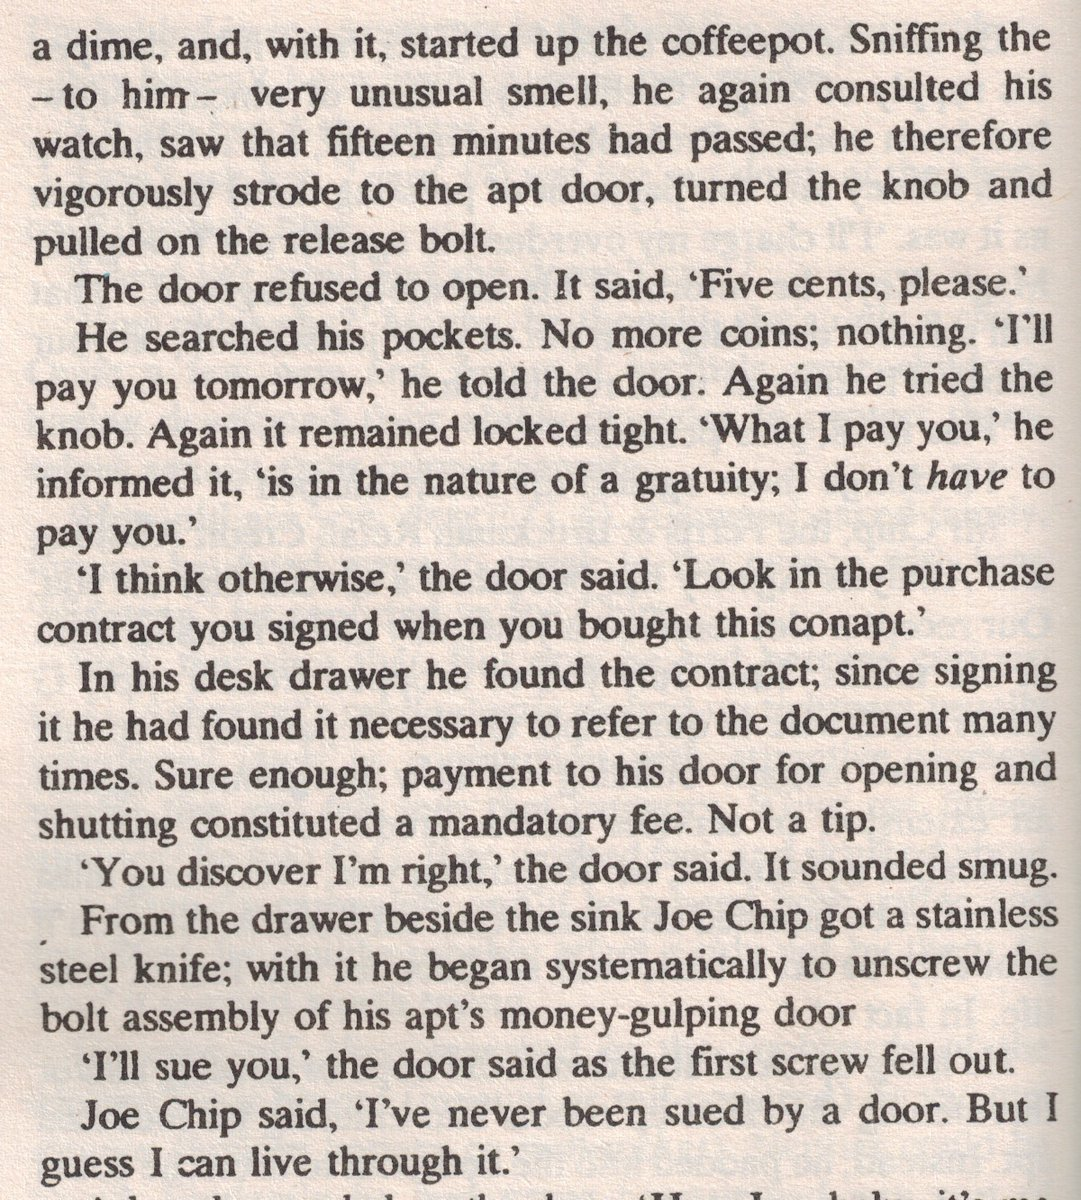 Can you be sued by a door demanding micropayments? A prescient scene from Philip K. Dick's 1969 novel, Ubik: https://t.co/HMcXd7r067